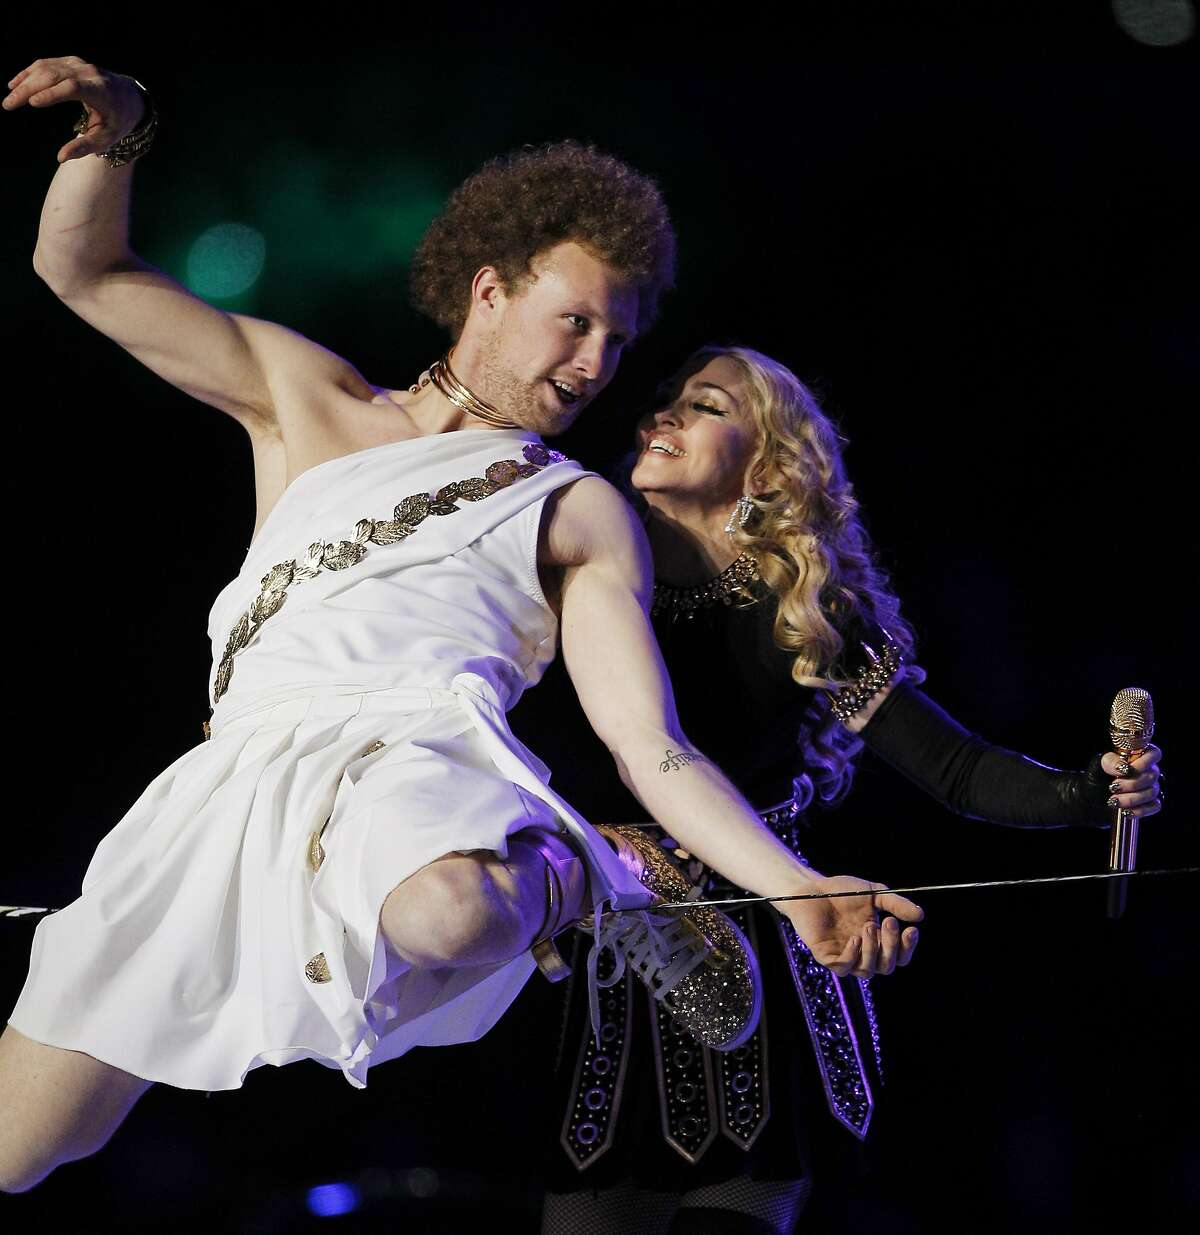 Madonna, right, performs during halftime of the NFL Super Bowl XLVI football game between the New York Giants and the New England Patriots Sunday, Feb. 5, 2012, in Indianapolis. (AP Photo/Paul Sancya)